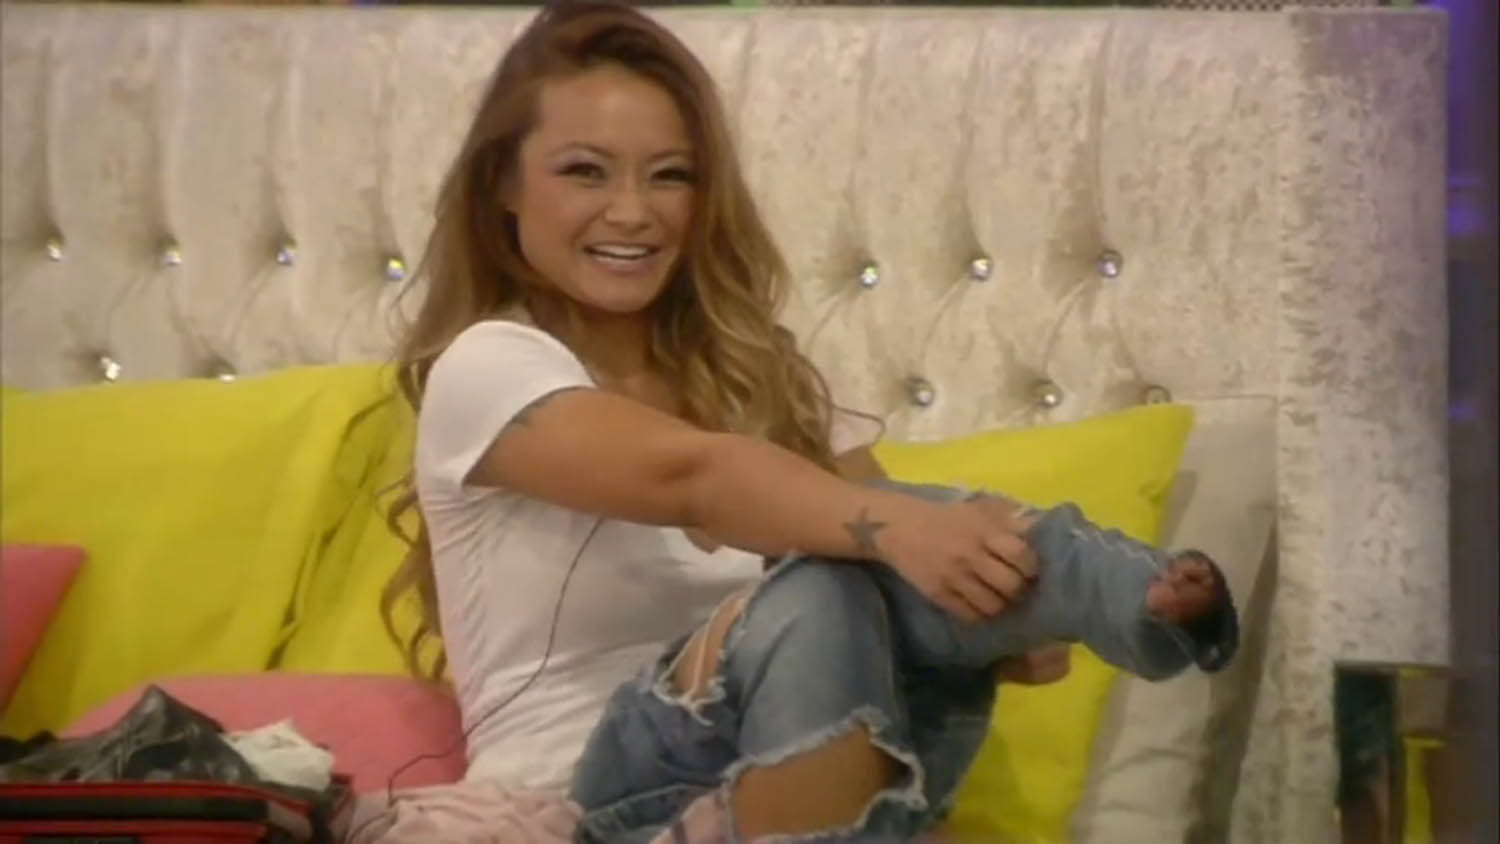 Celebrity Big Brother 2015: Tila Tequila wastes no time getting flirty with James Hill